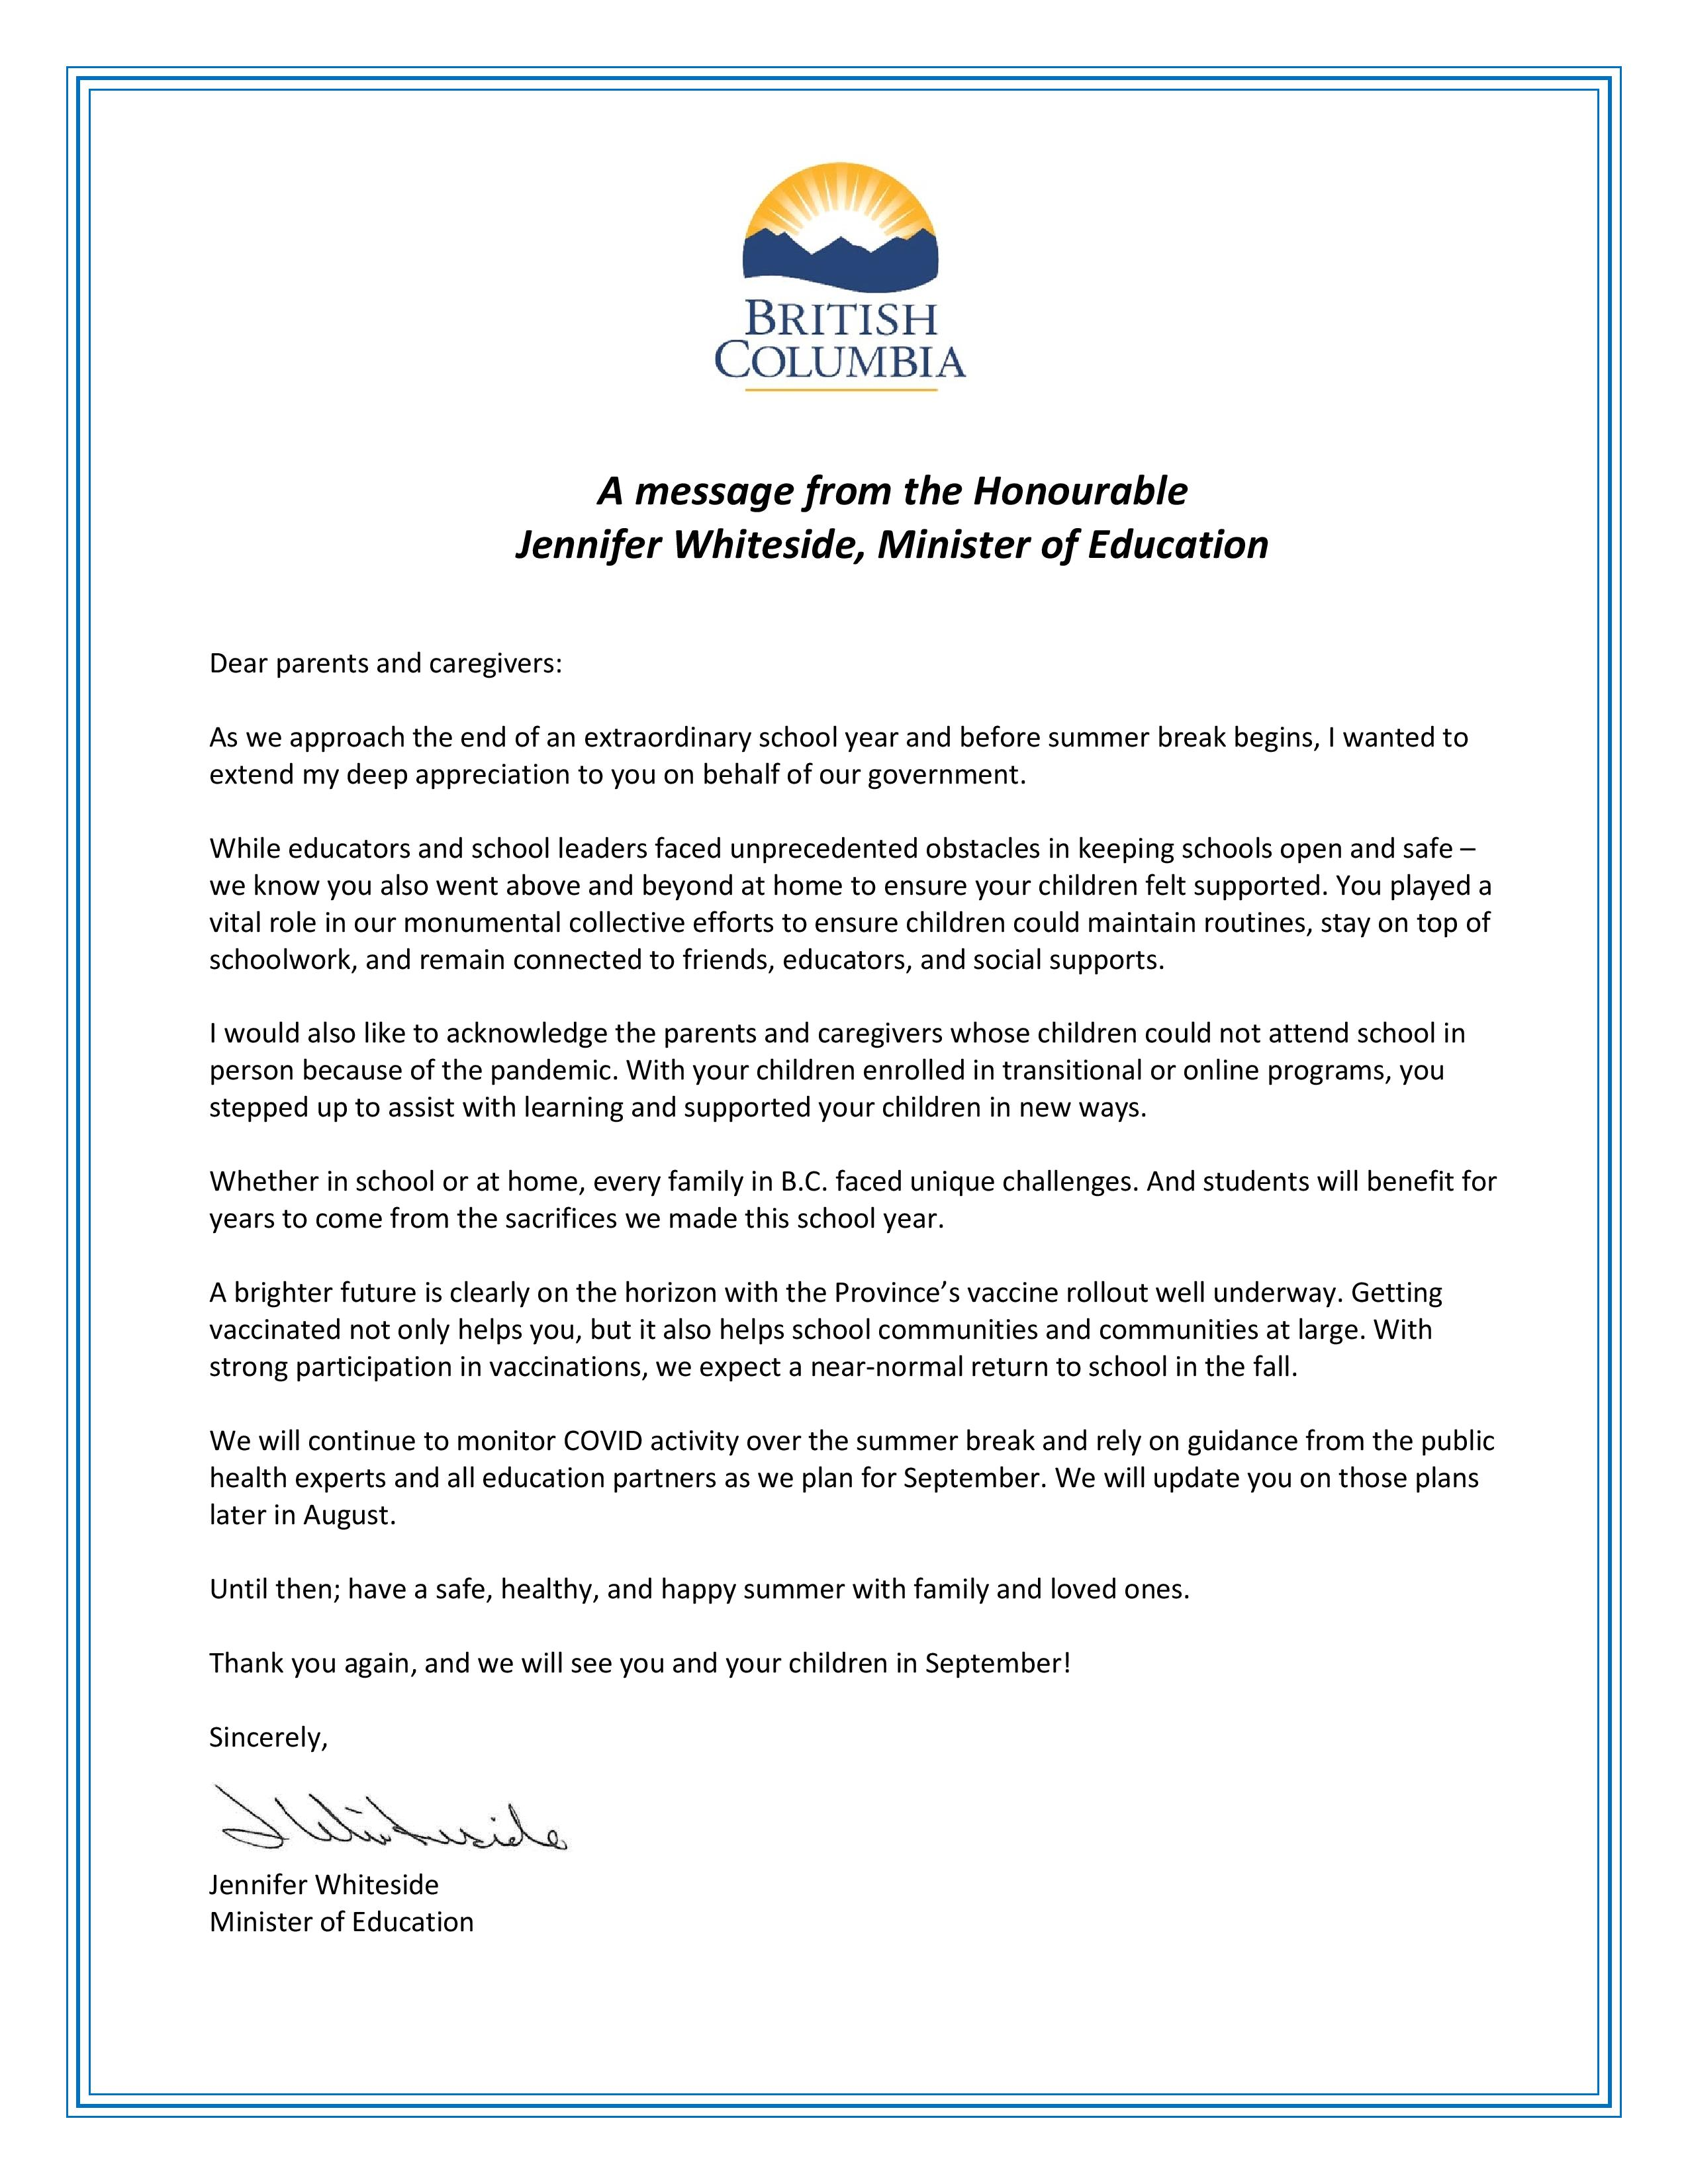 Letter to parents and caregivers from the BC Ministry of Educastion